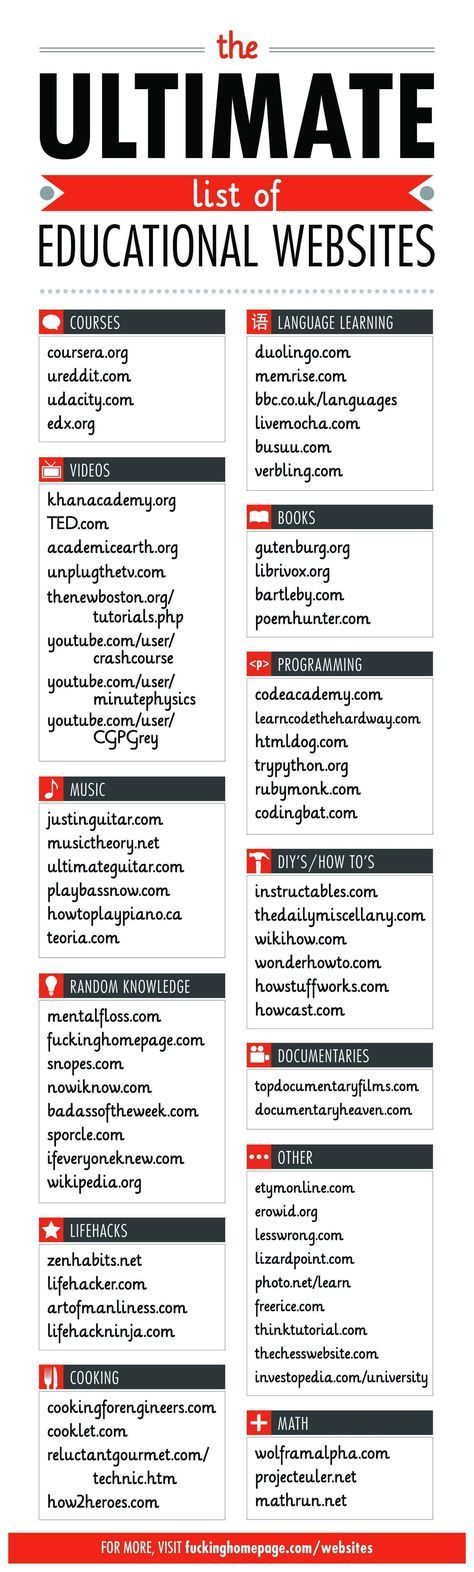 You can learn nearly anything and everything from the internet, the only trouble is finding reliable sources for information. Below is an infographic that has put together some of the most useful sites when it comes to learning something new. I myself learned how to design and code purely from the internet - no schooling…